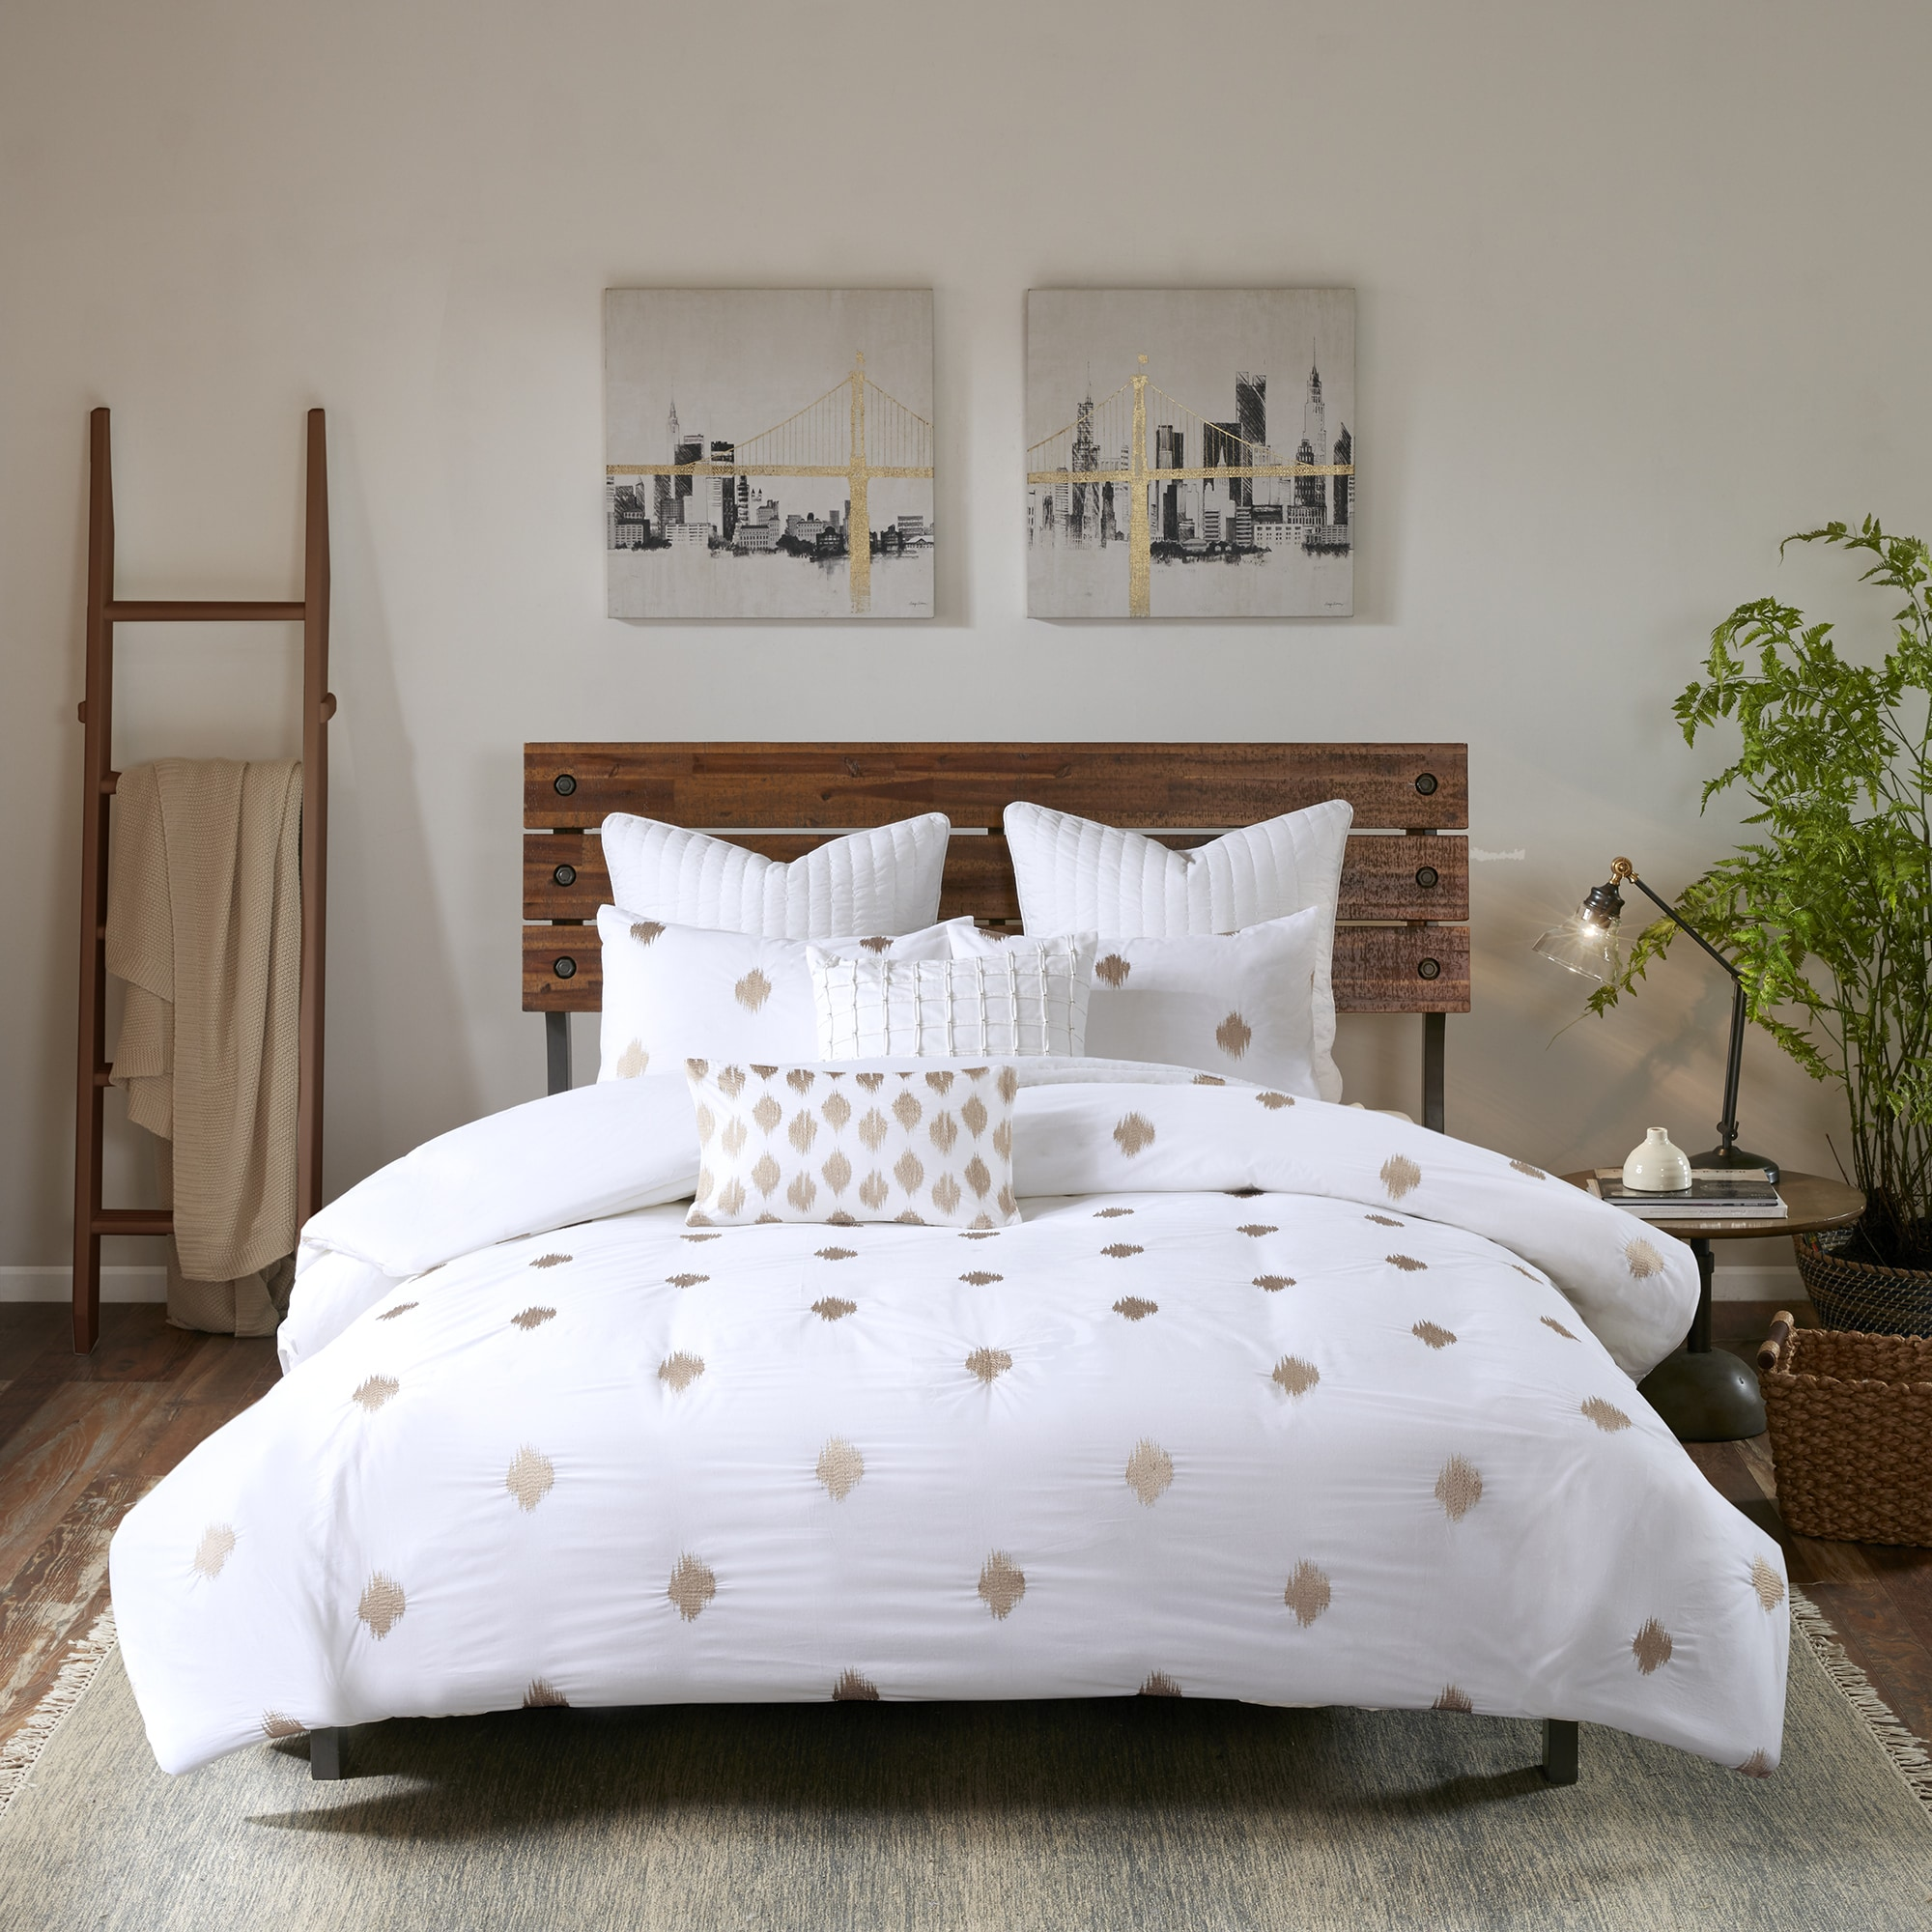 bedding metallic sets itm home embroidery luxury designer duvet nimsay embroidered cover